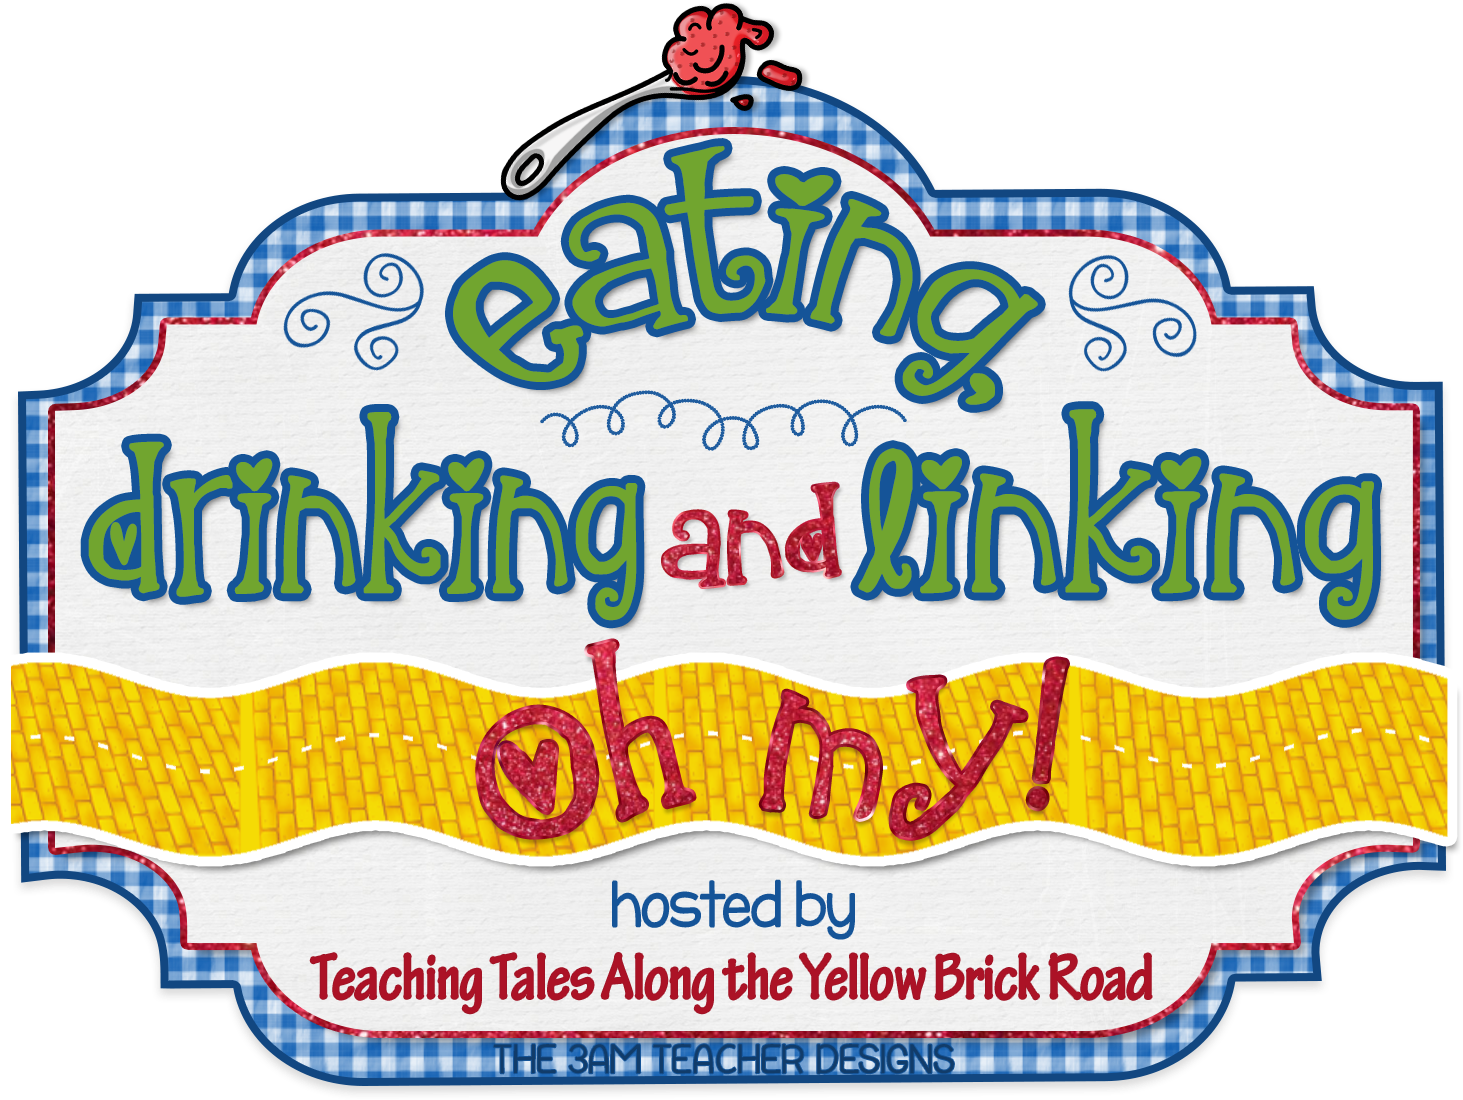 http://teaching-in-oz.blogspot.com/2014/07/eating-drinking-linking.html